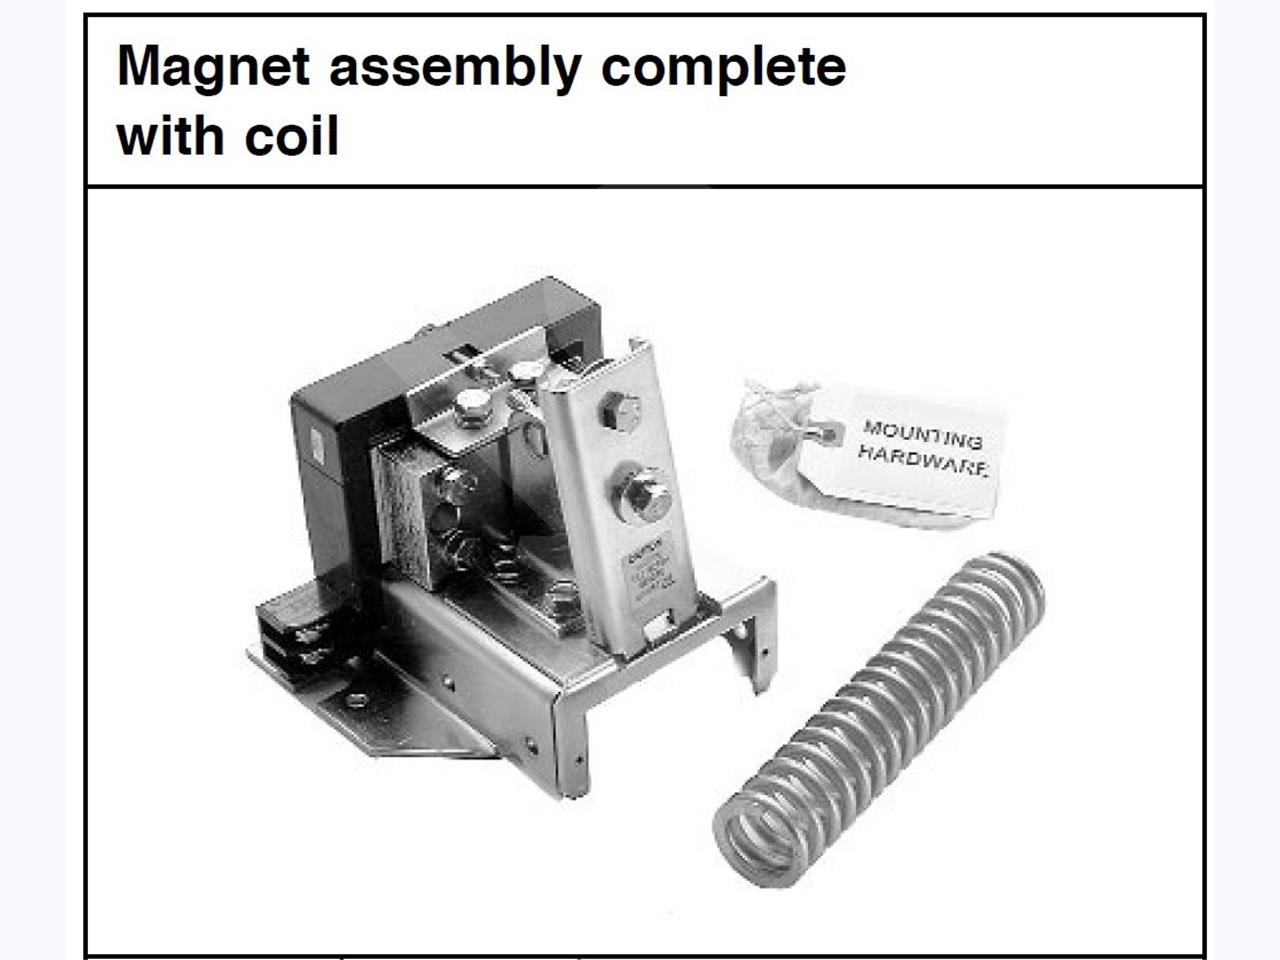 WH 120VAC CLOSE COIL AND MAGNET ASSEMBLY